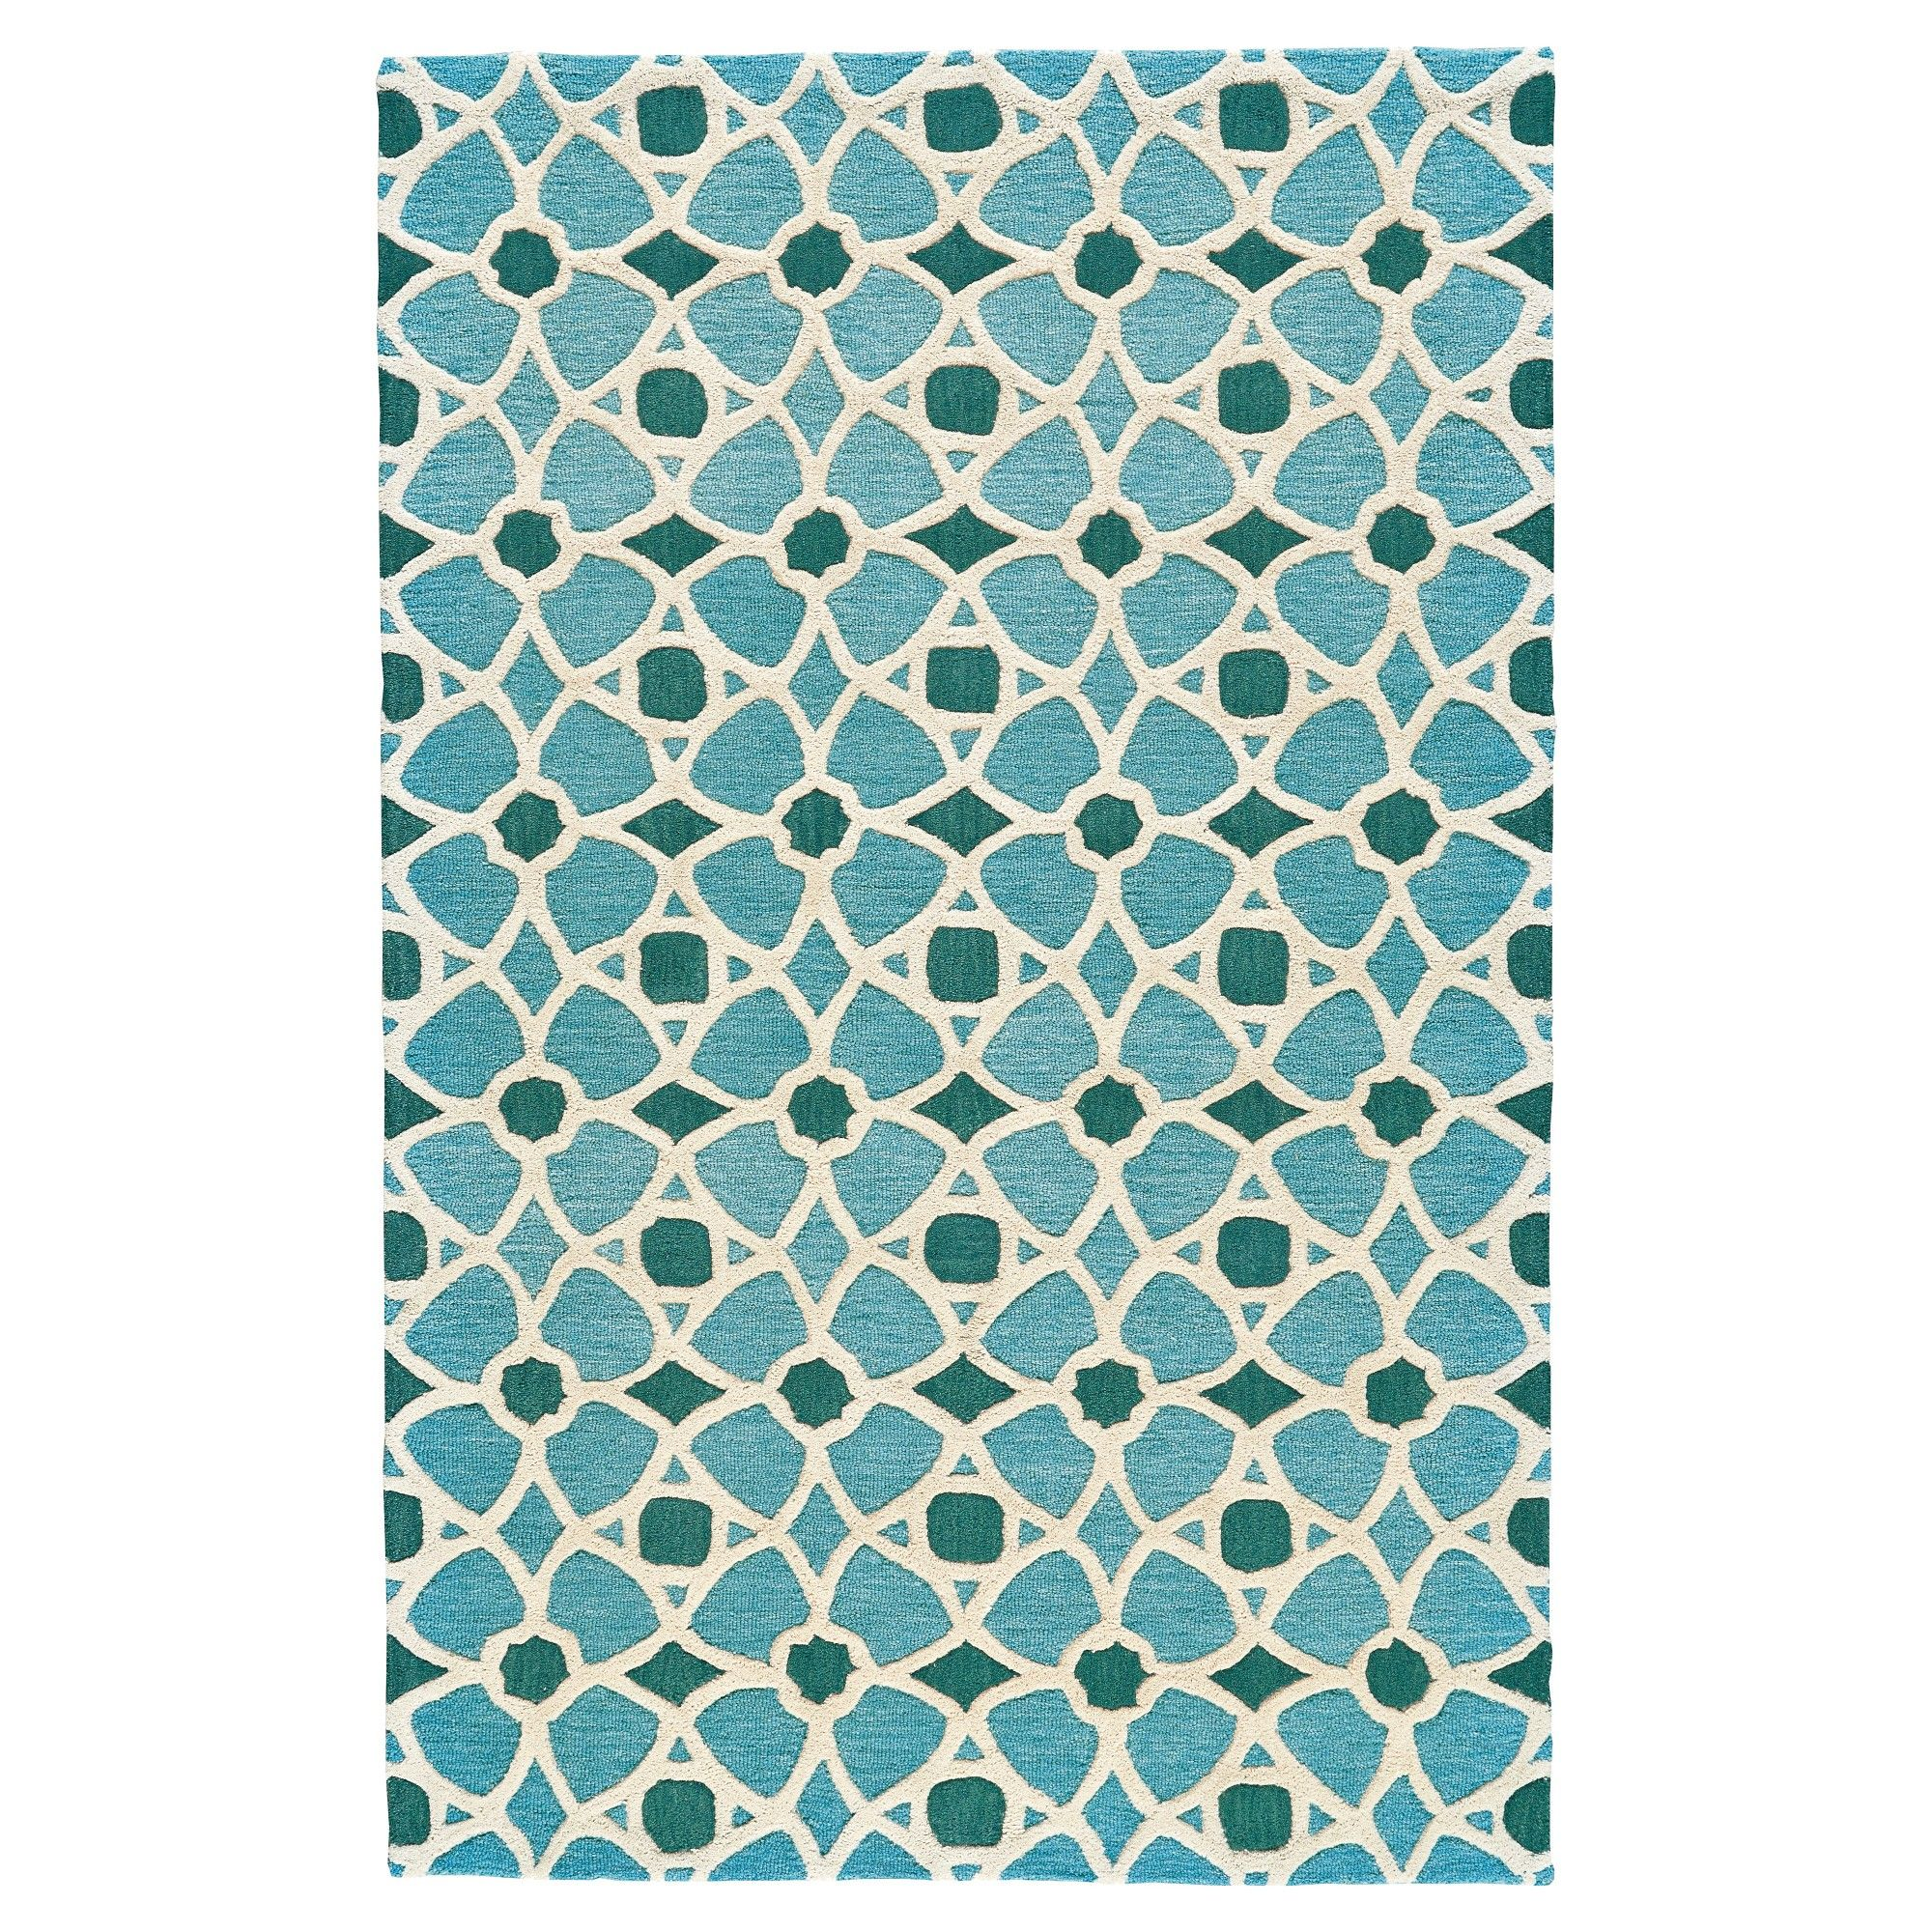 Lagoon Geometric Tufted Area Rug 8 X11 Room Envy Green